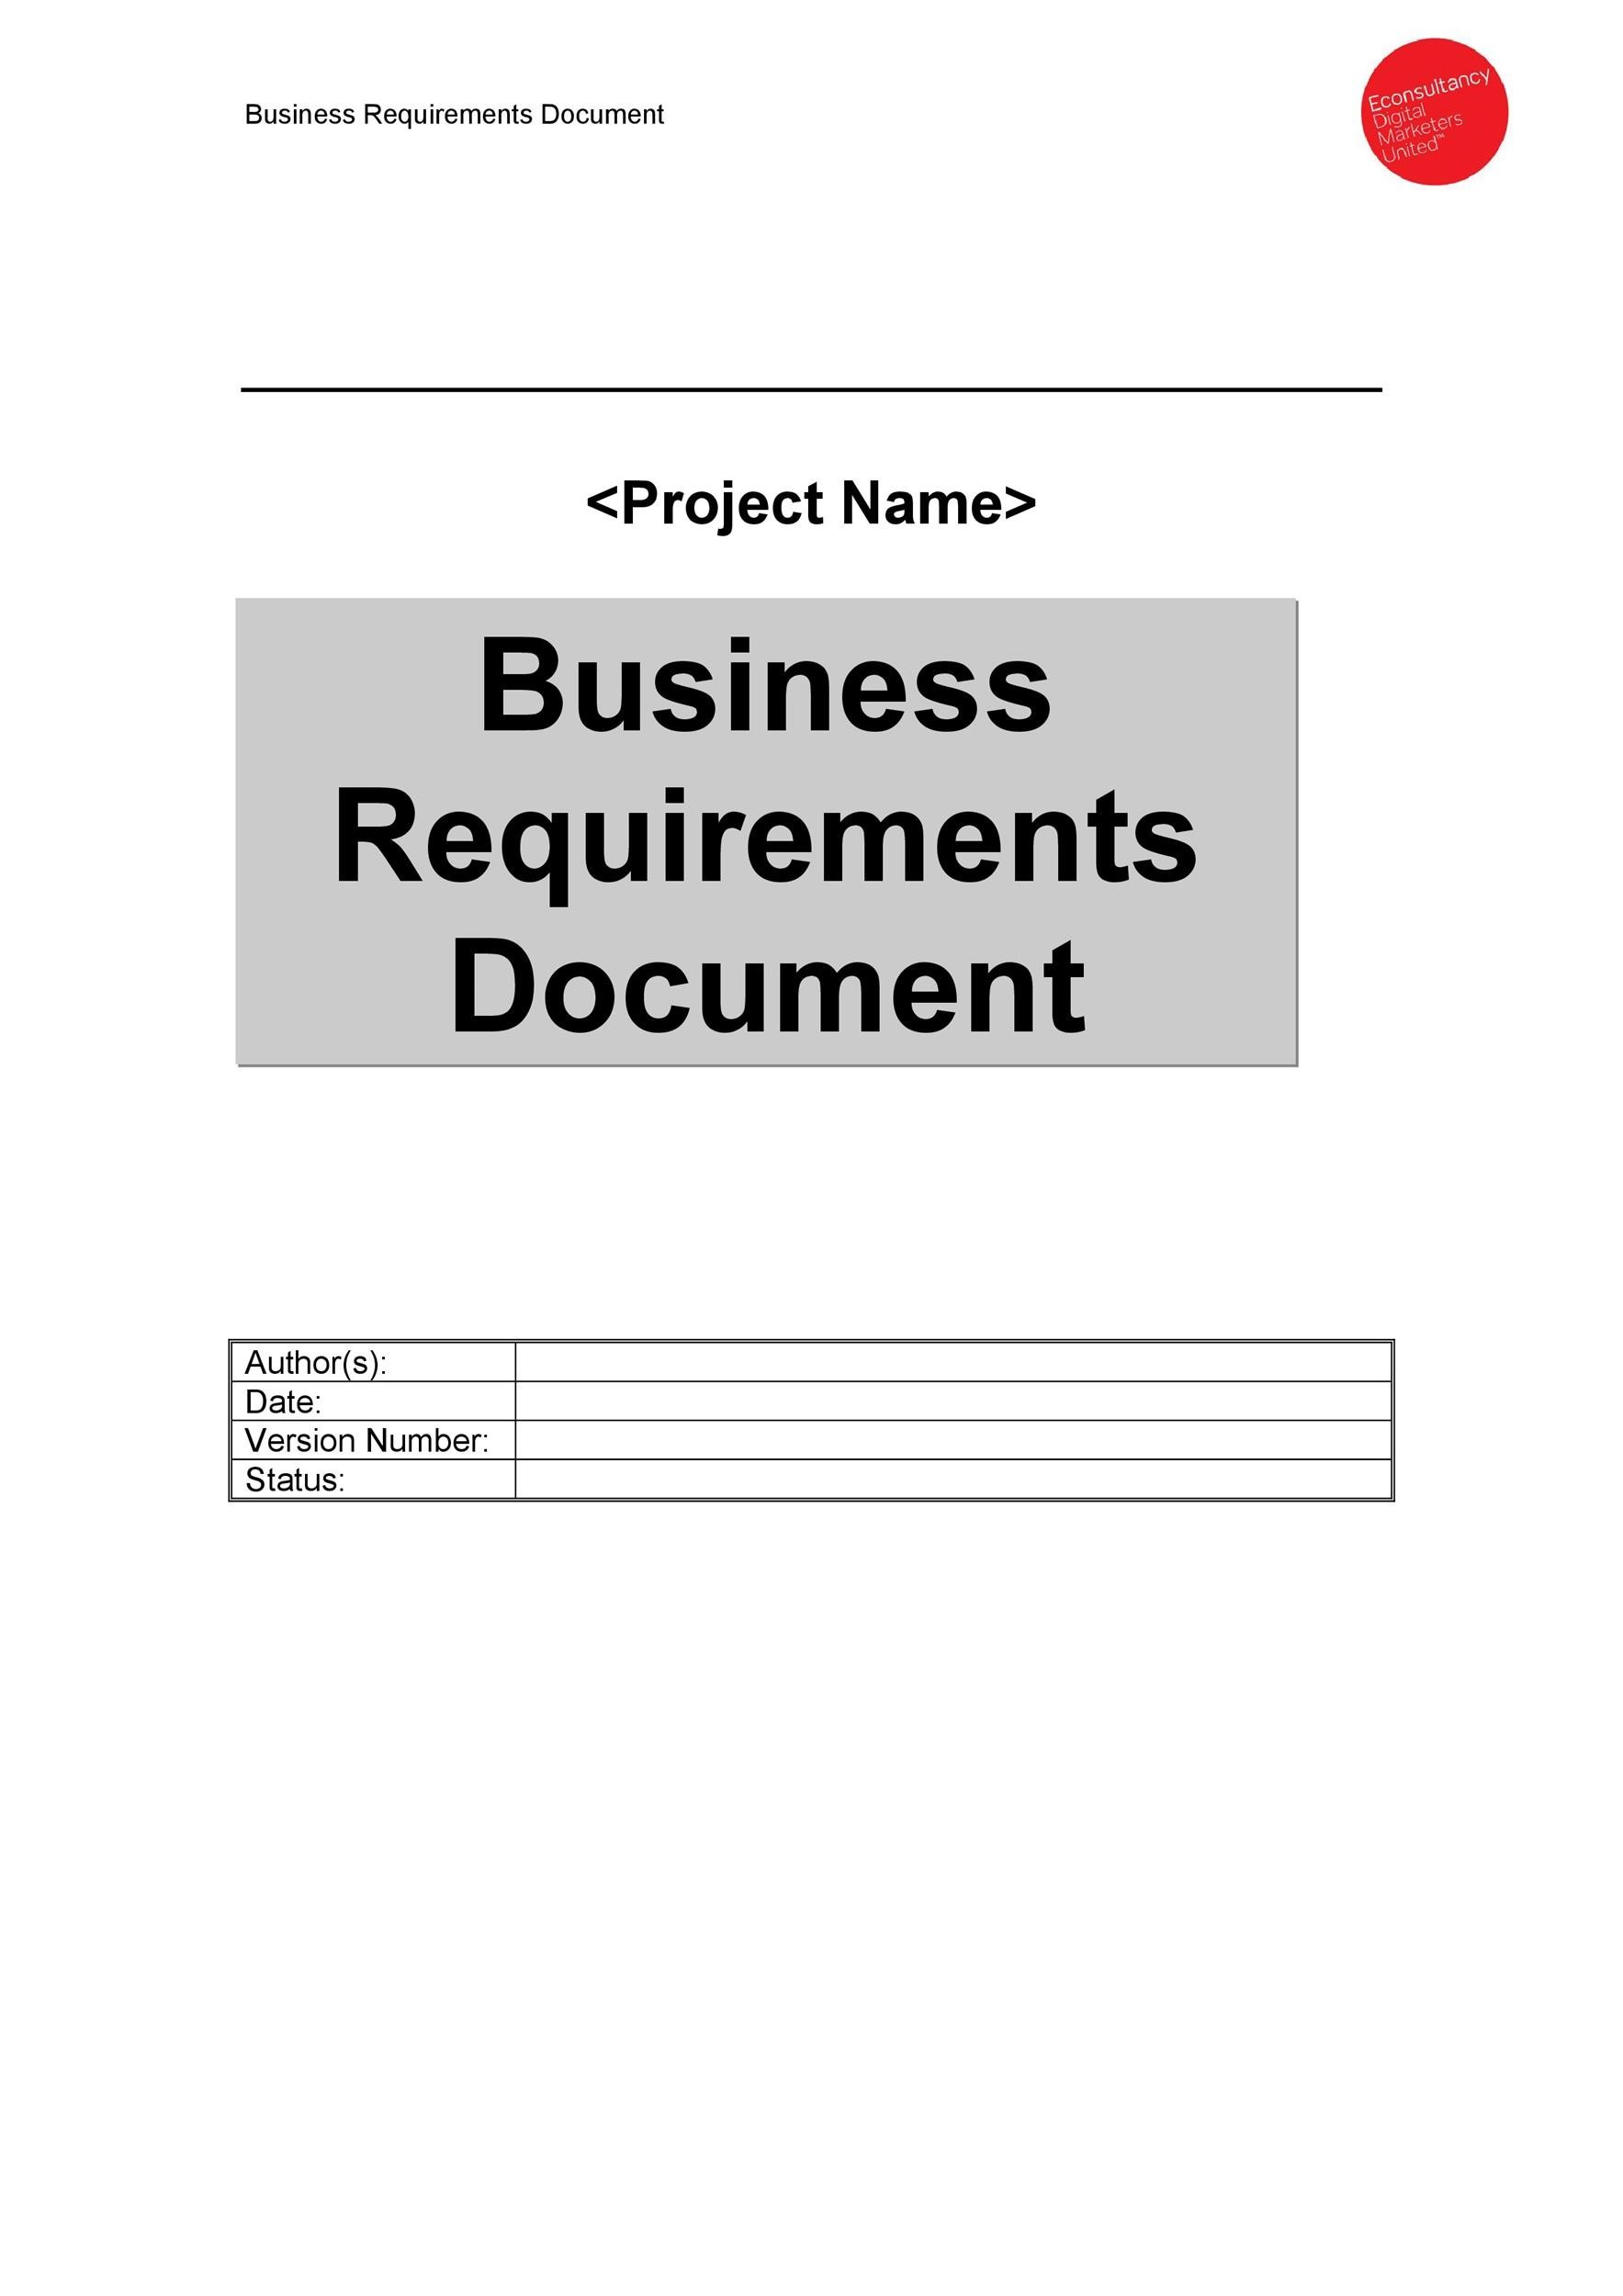 40 simple business requirements document templates template lab free business requirements document template 19 wajeb